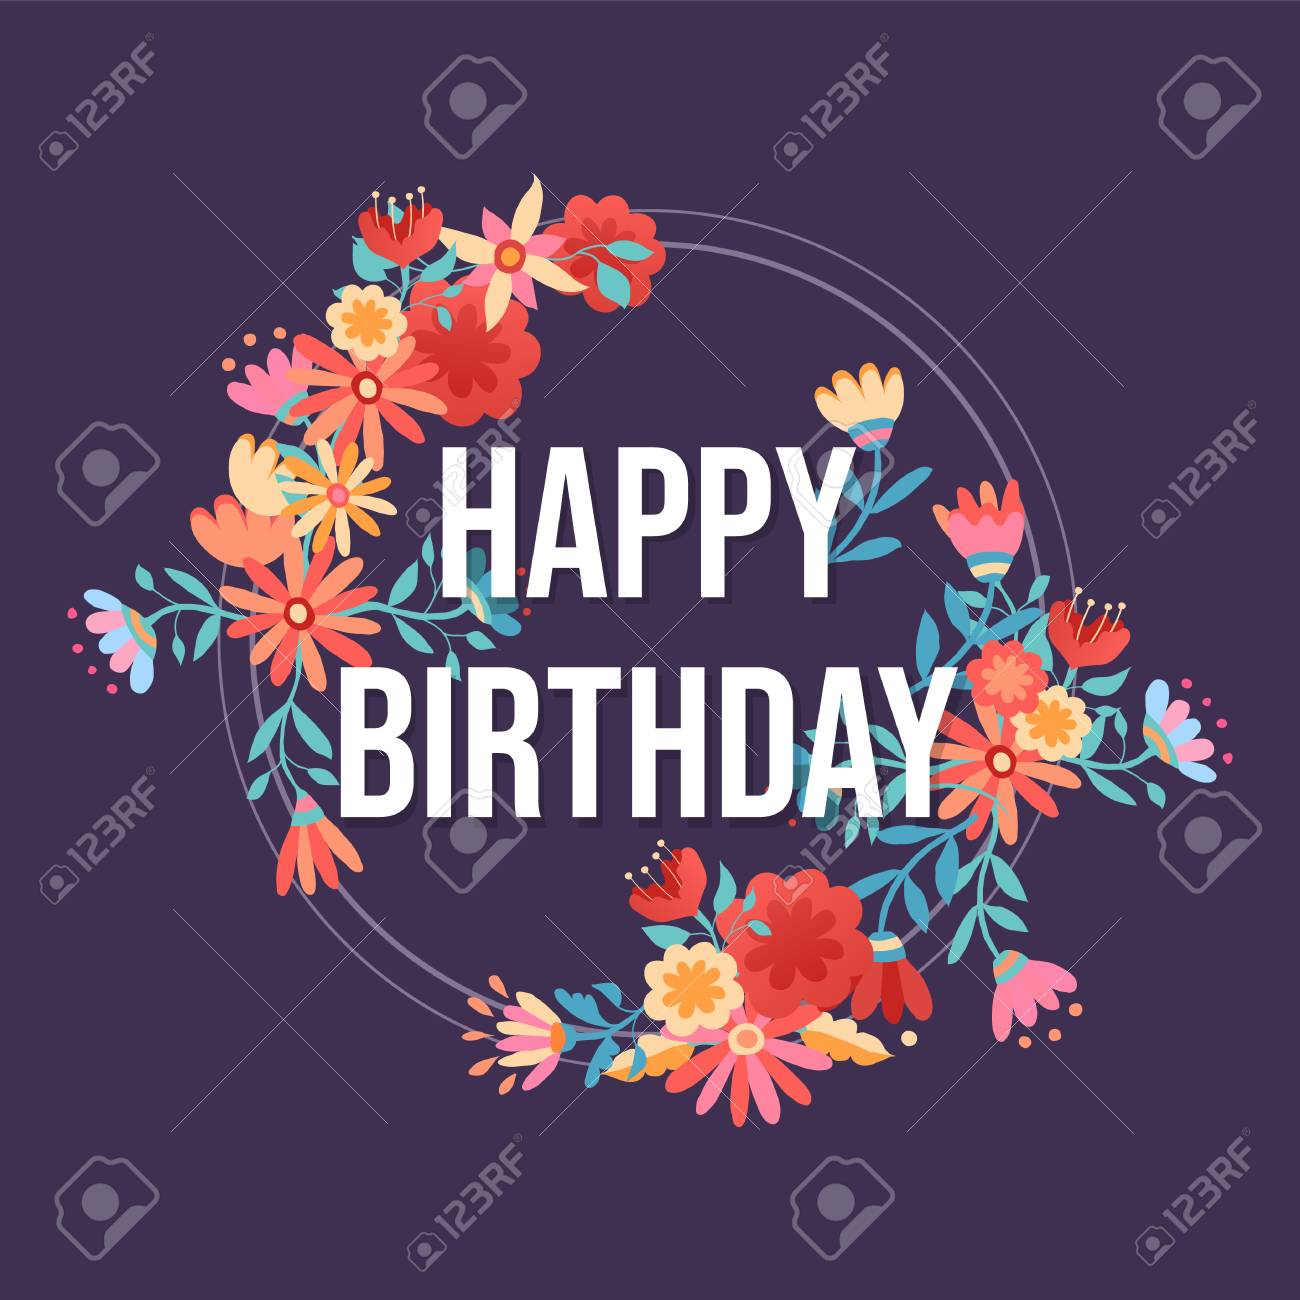 happy birthday design with pink flower wreath background ideal royalty free cliparts vectors and stock illustration image 102242171